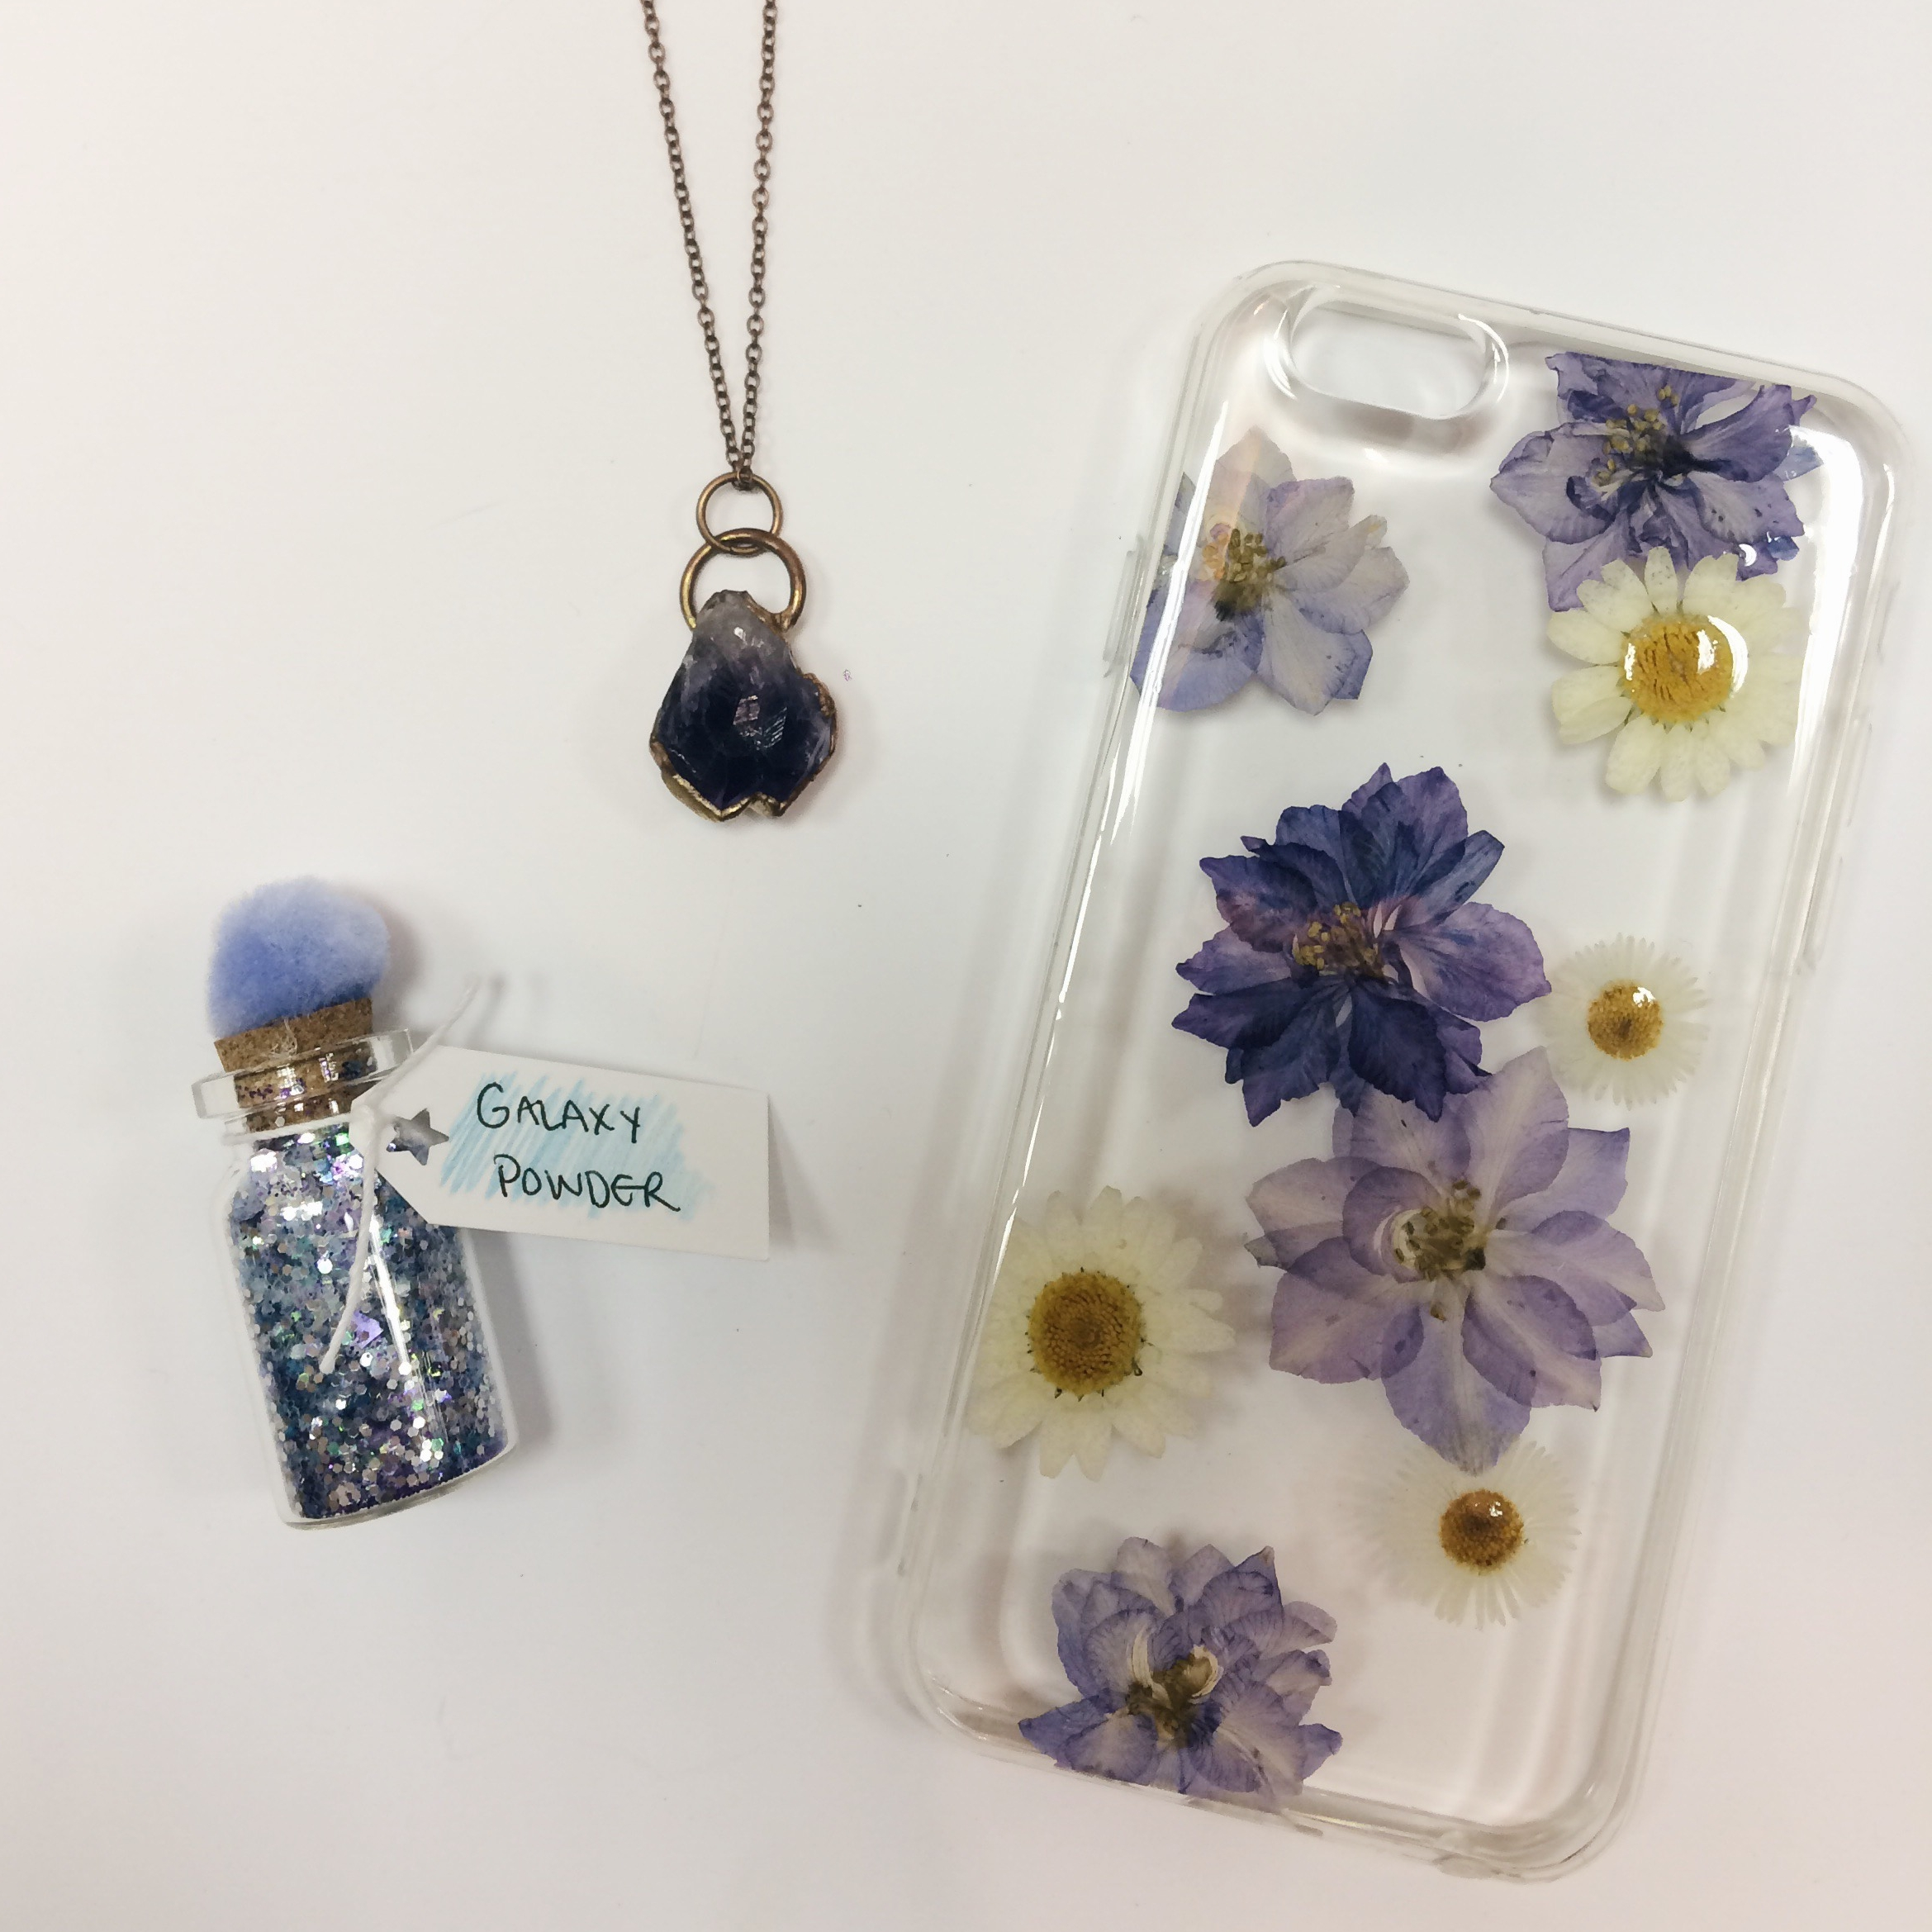 Amethyst & Copper Necklace, $35 Galaxy Powder, $3 Pressed Floral iPhone 6/6s case, $40